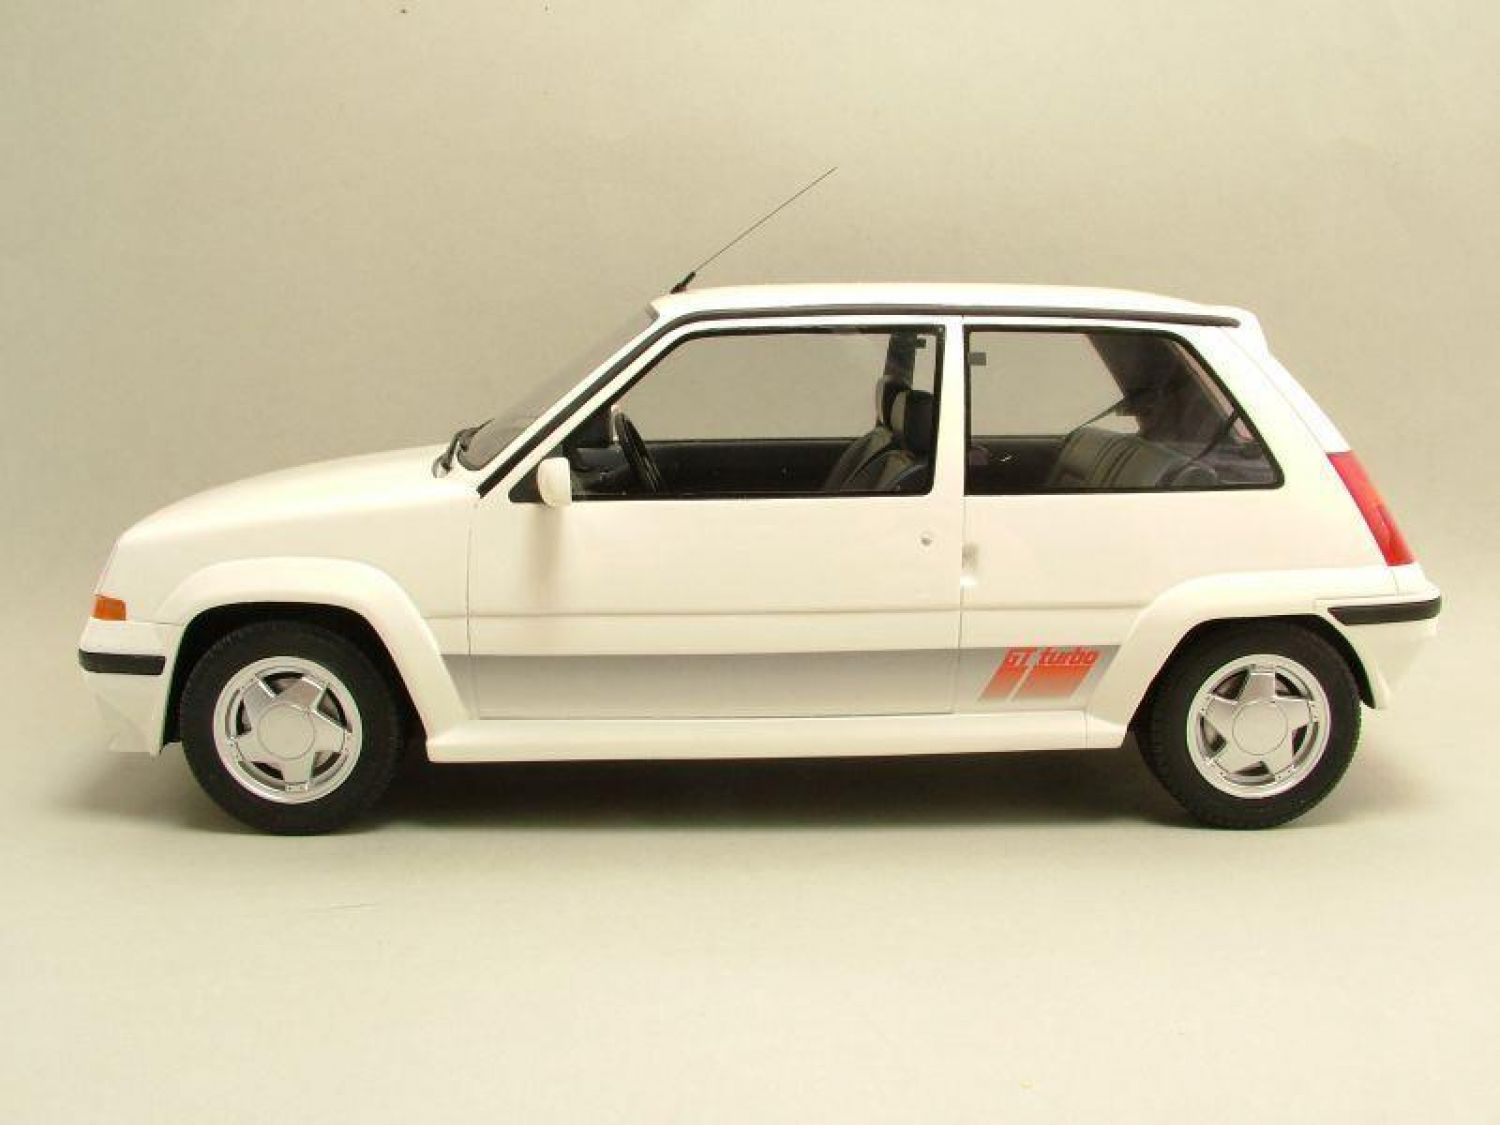 renault super 5 gt turbo 1987 blanc m tallique mod le de. Black Bedroom Furniture Sets. Home Design Ideas